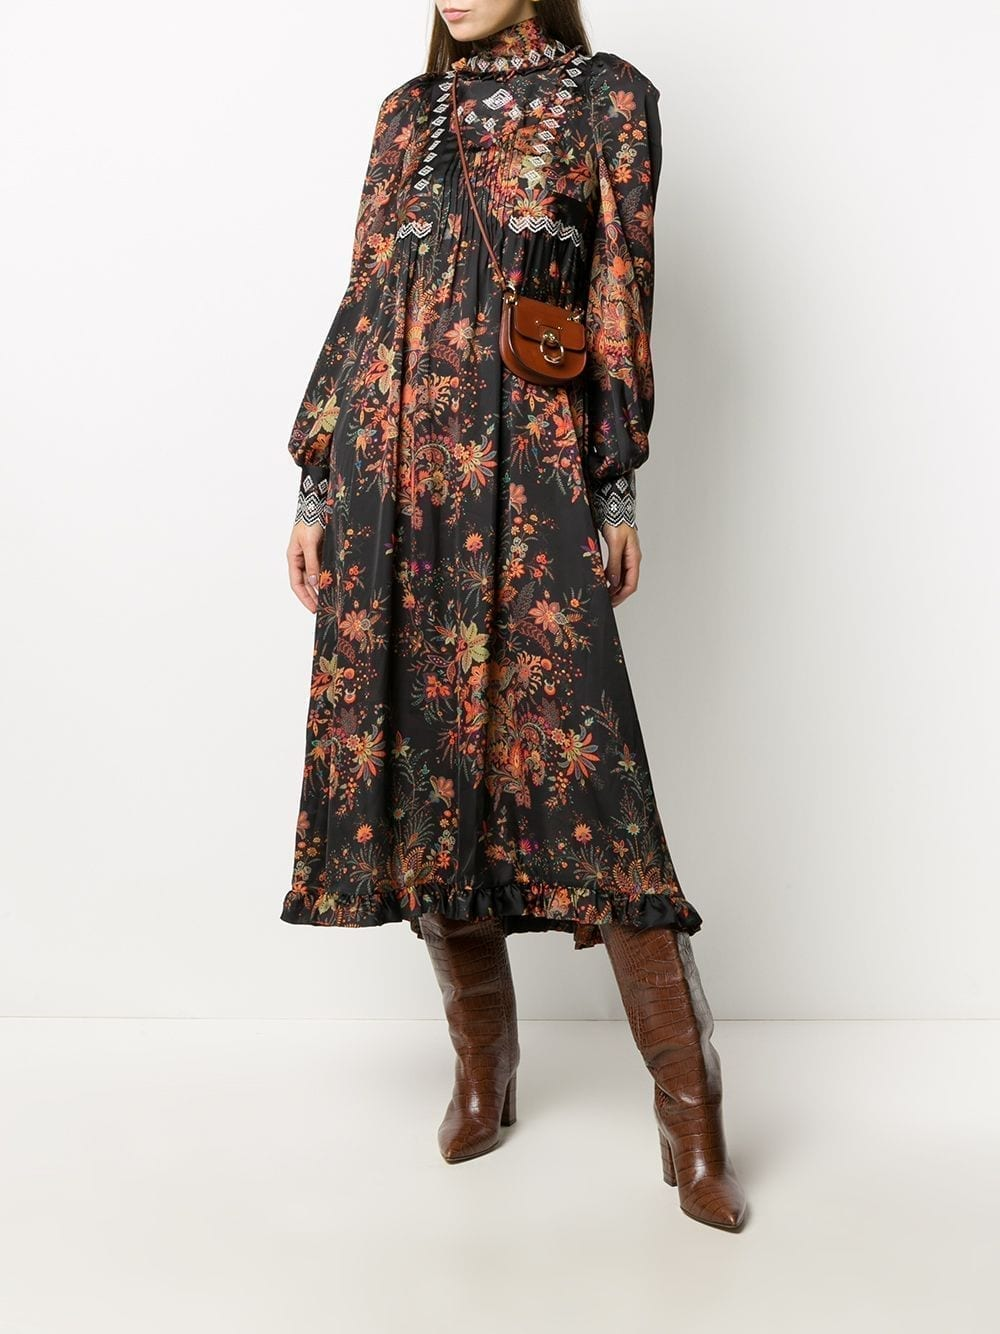 PACO RABANNE Paisley-print High Neck Dress